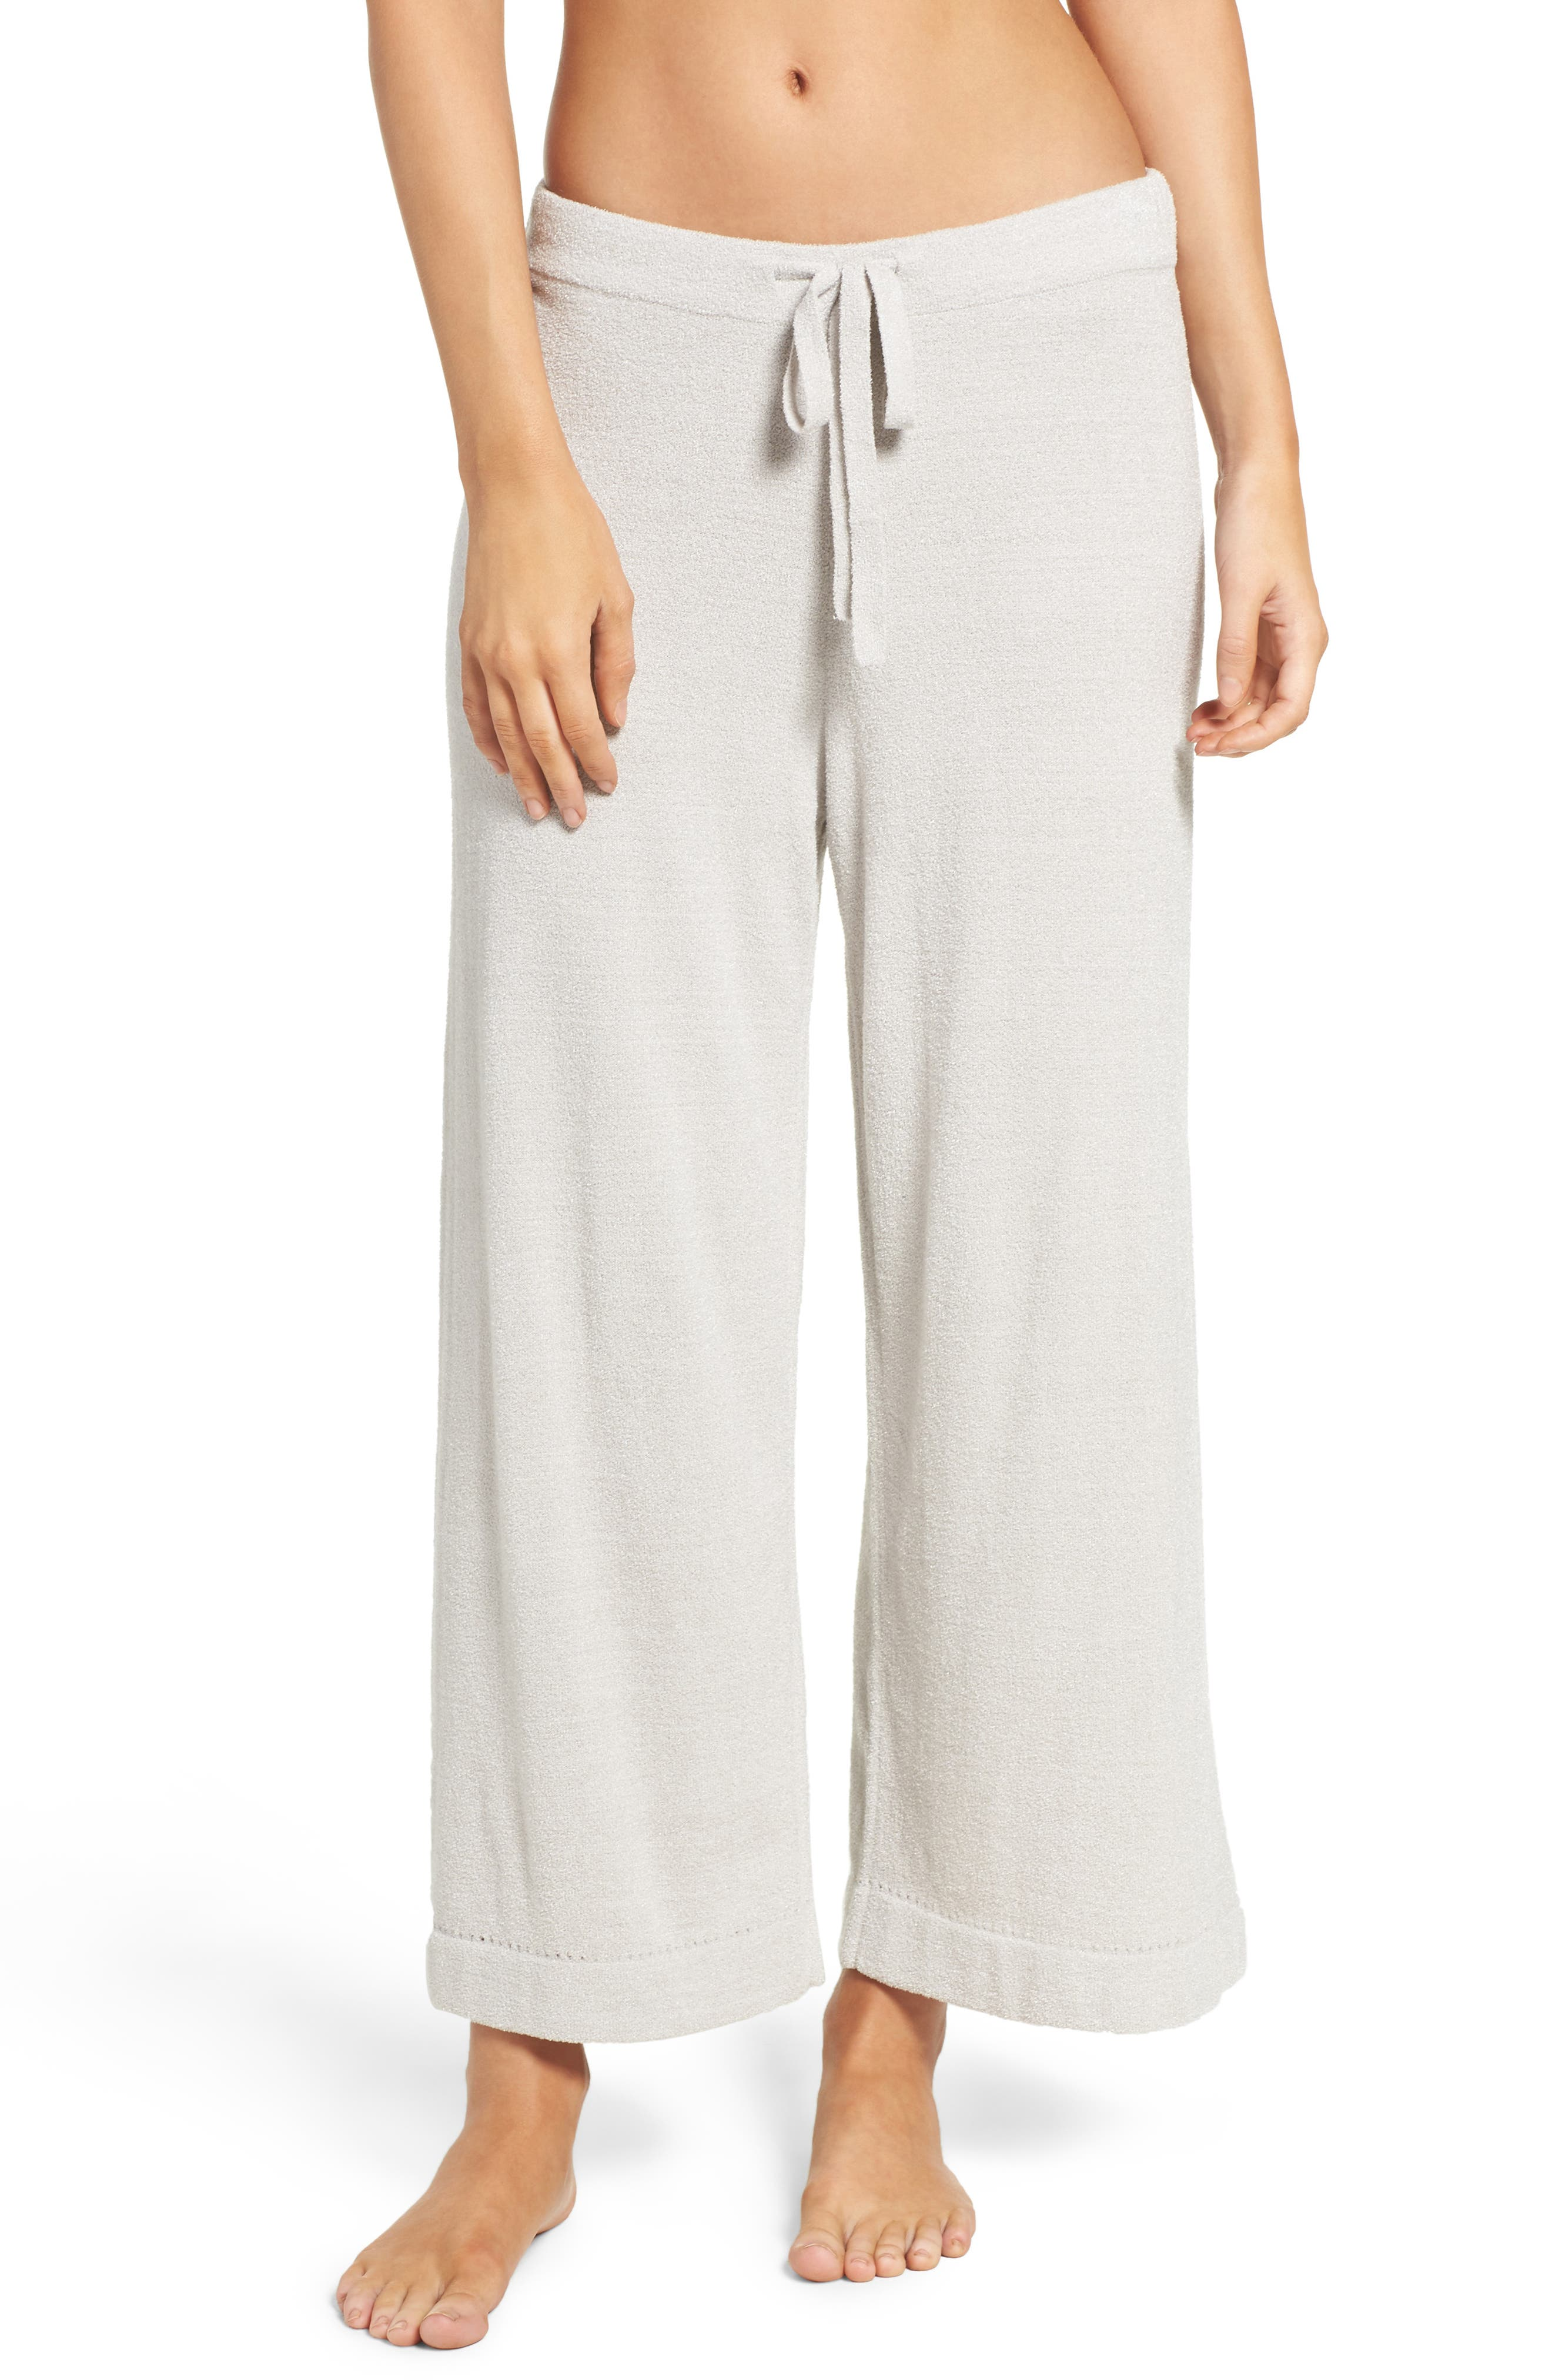 Alternate Image 1 Selected - Barefoot Dreams® Cozychic Ultra Lite® Culotte Lounge Pants